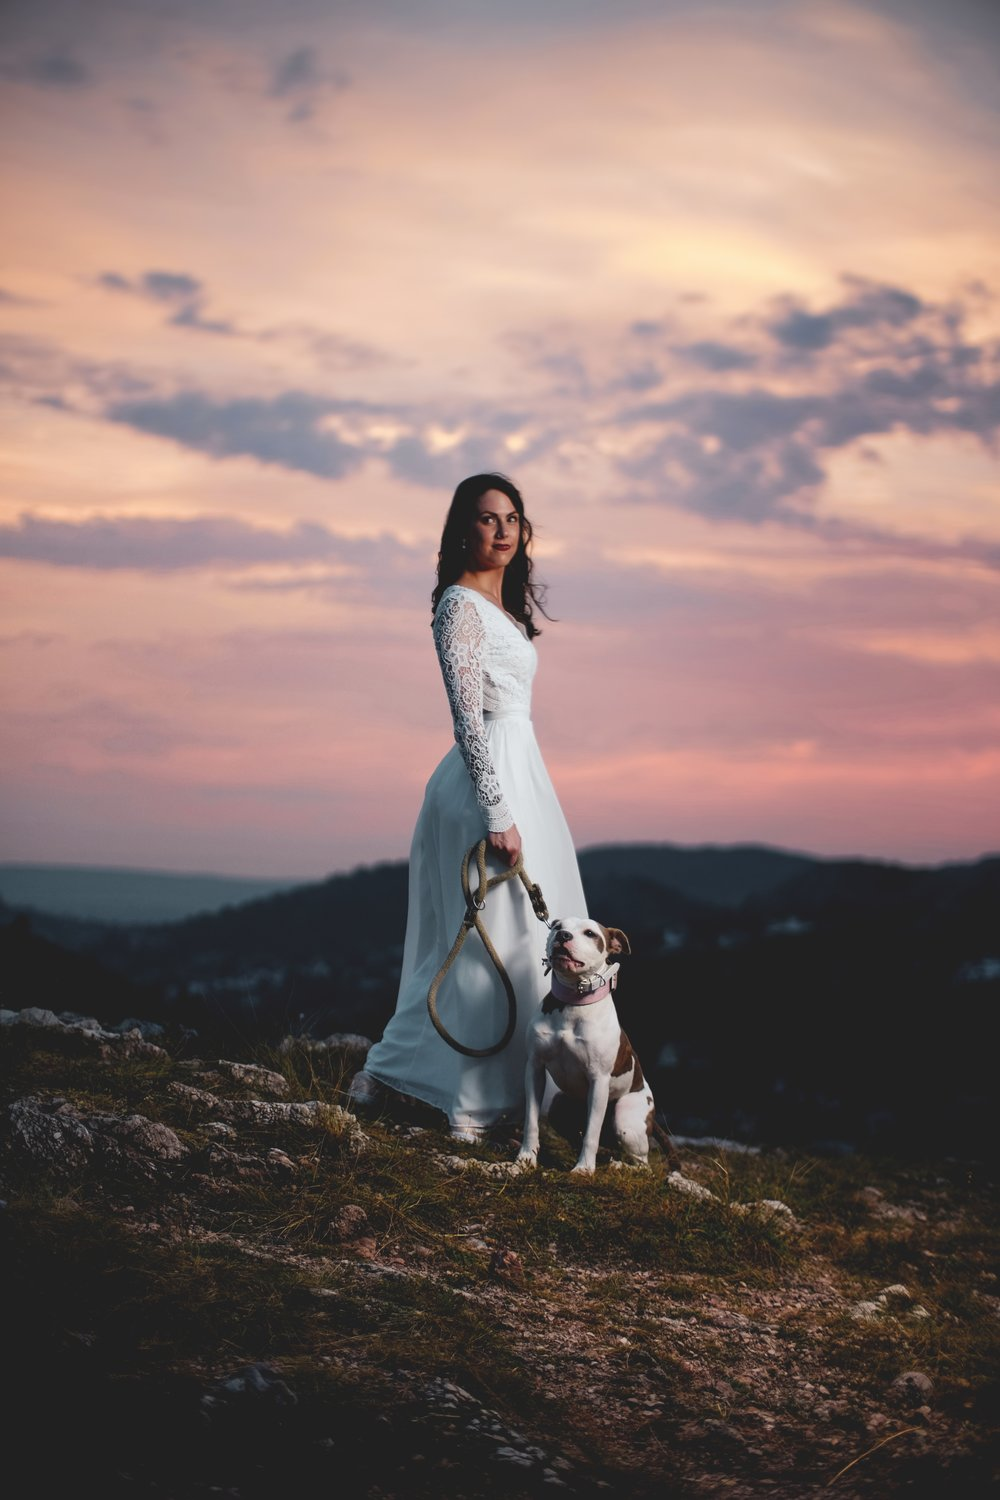 NYT Dog Wedding Article on The Dapple: Dog Lifestyle Blog